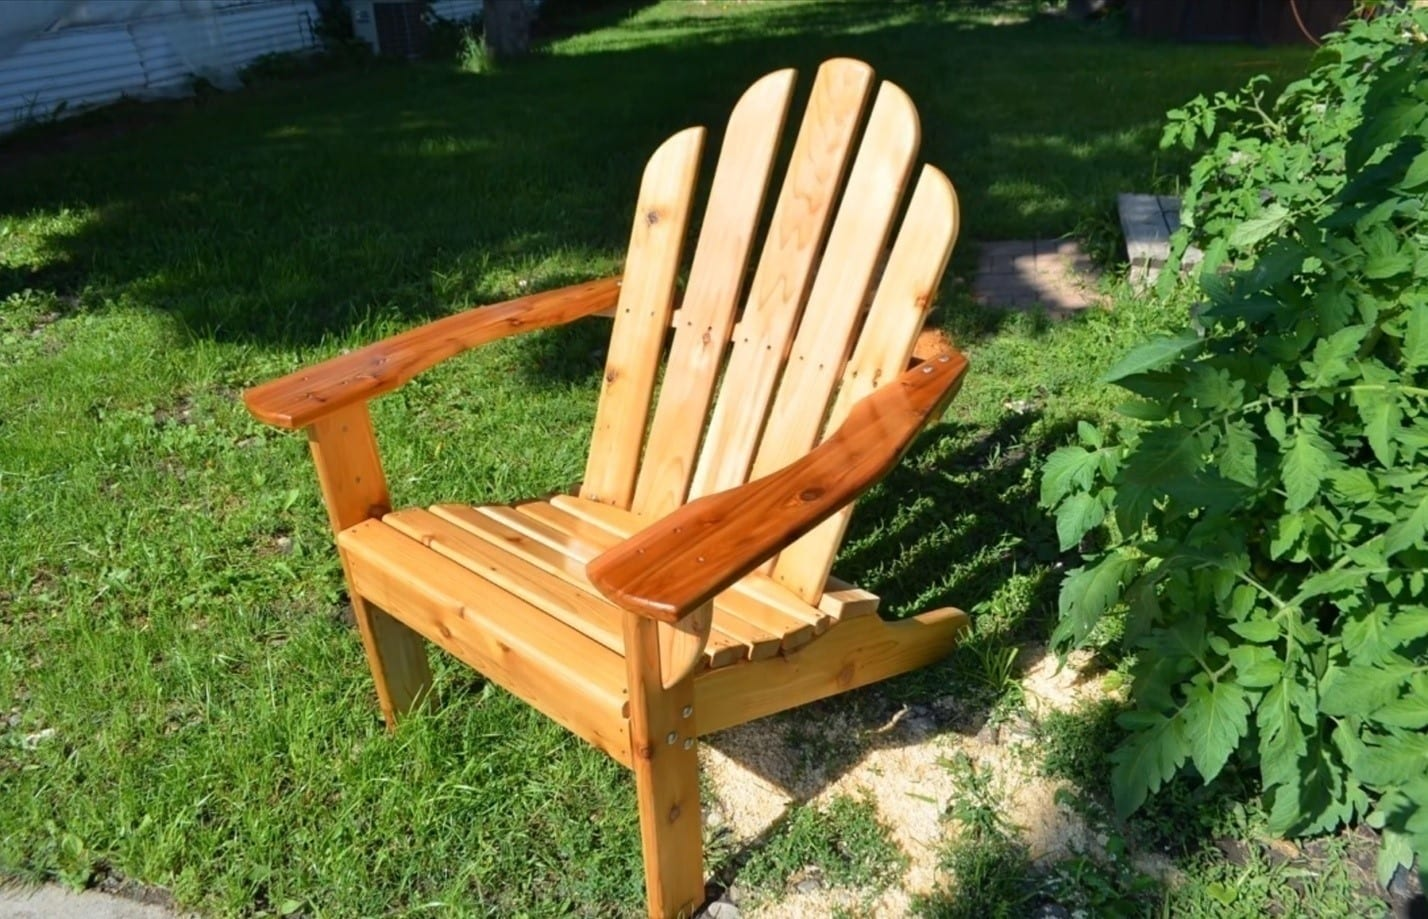 This Adirondack Chair Project Will Help You To Build An Outdoor That May Become The Centerpiece Of Your Backyard